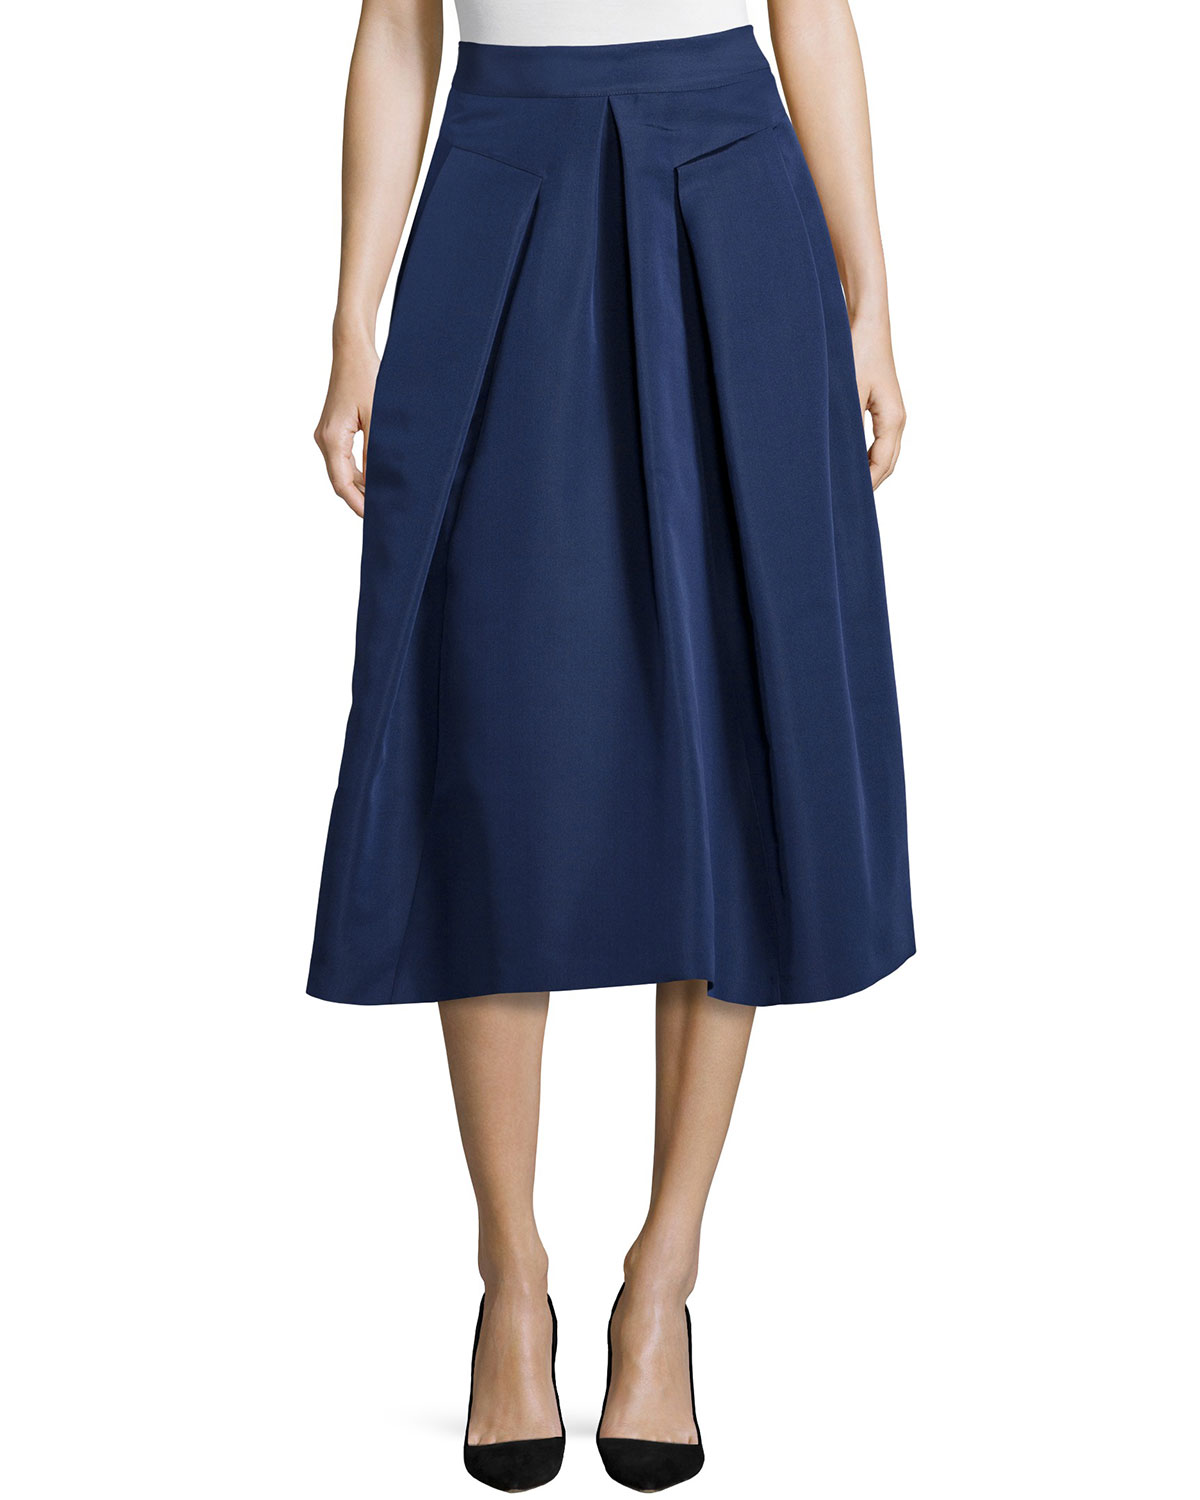 Inverted-Pleat Midi Skirt, Size: 0, Navy - Rebecca Taylor